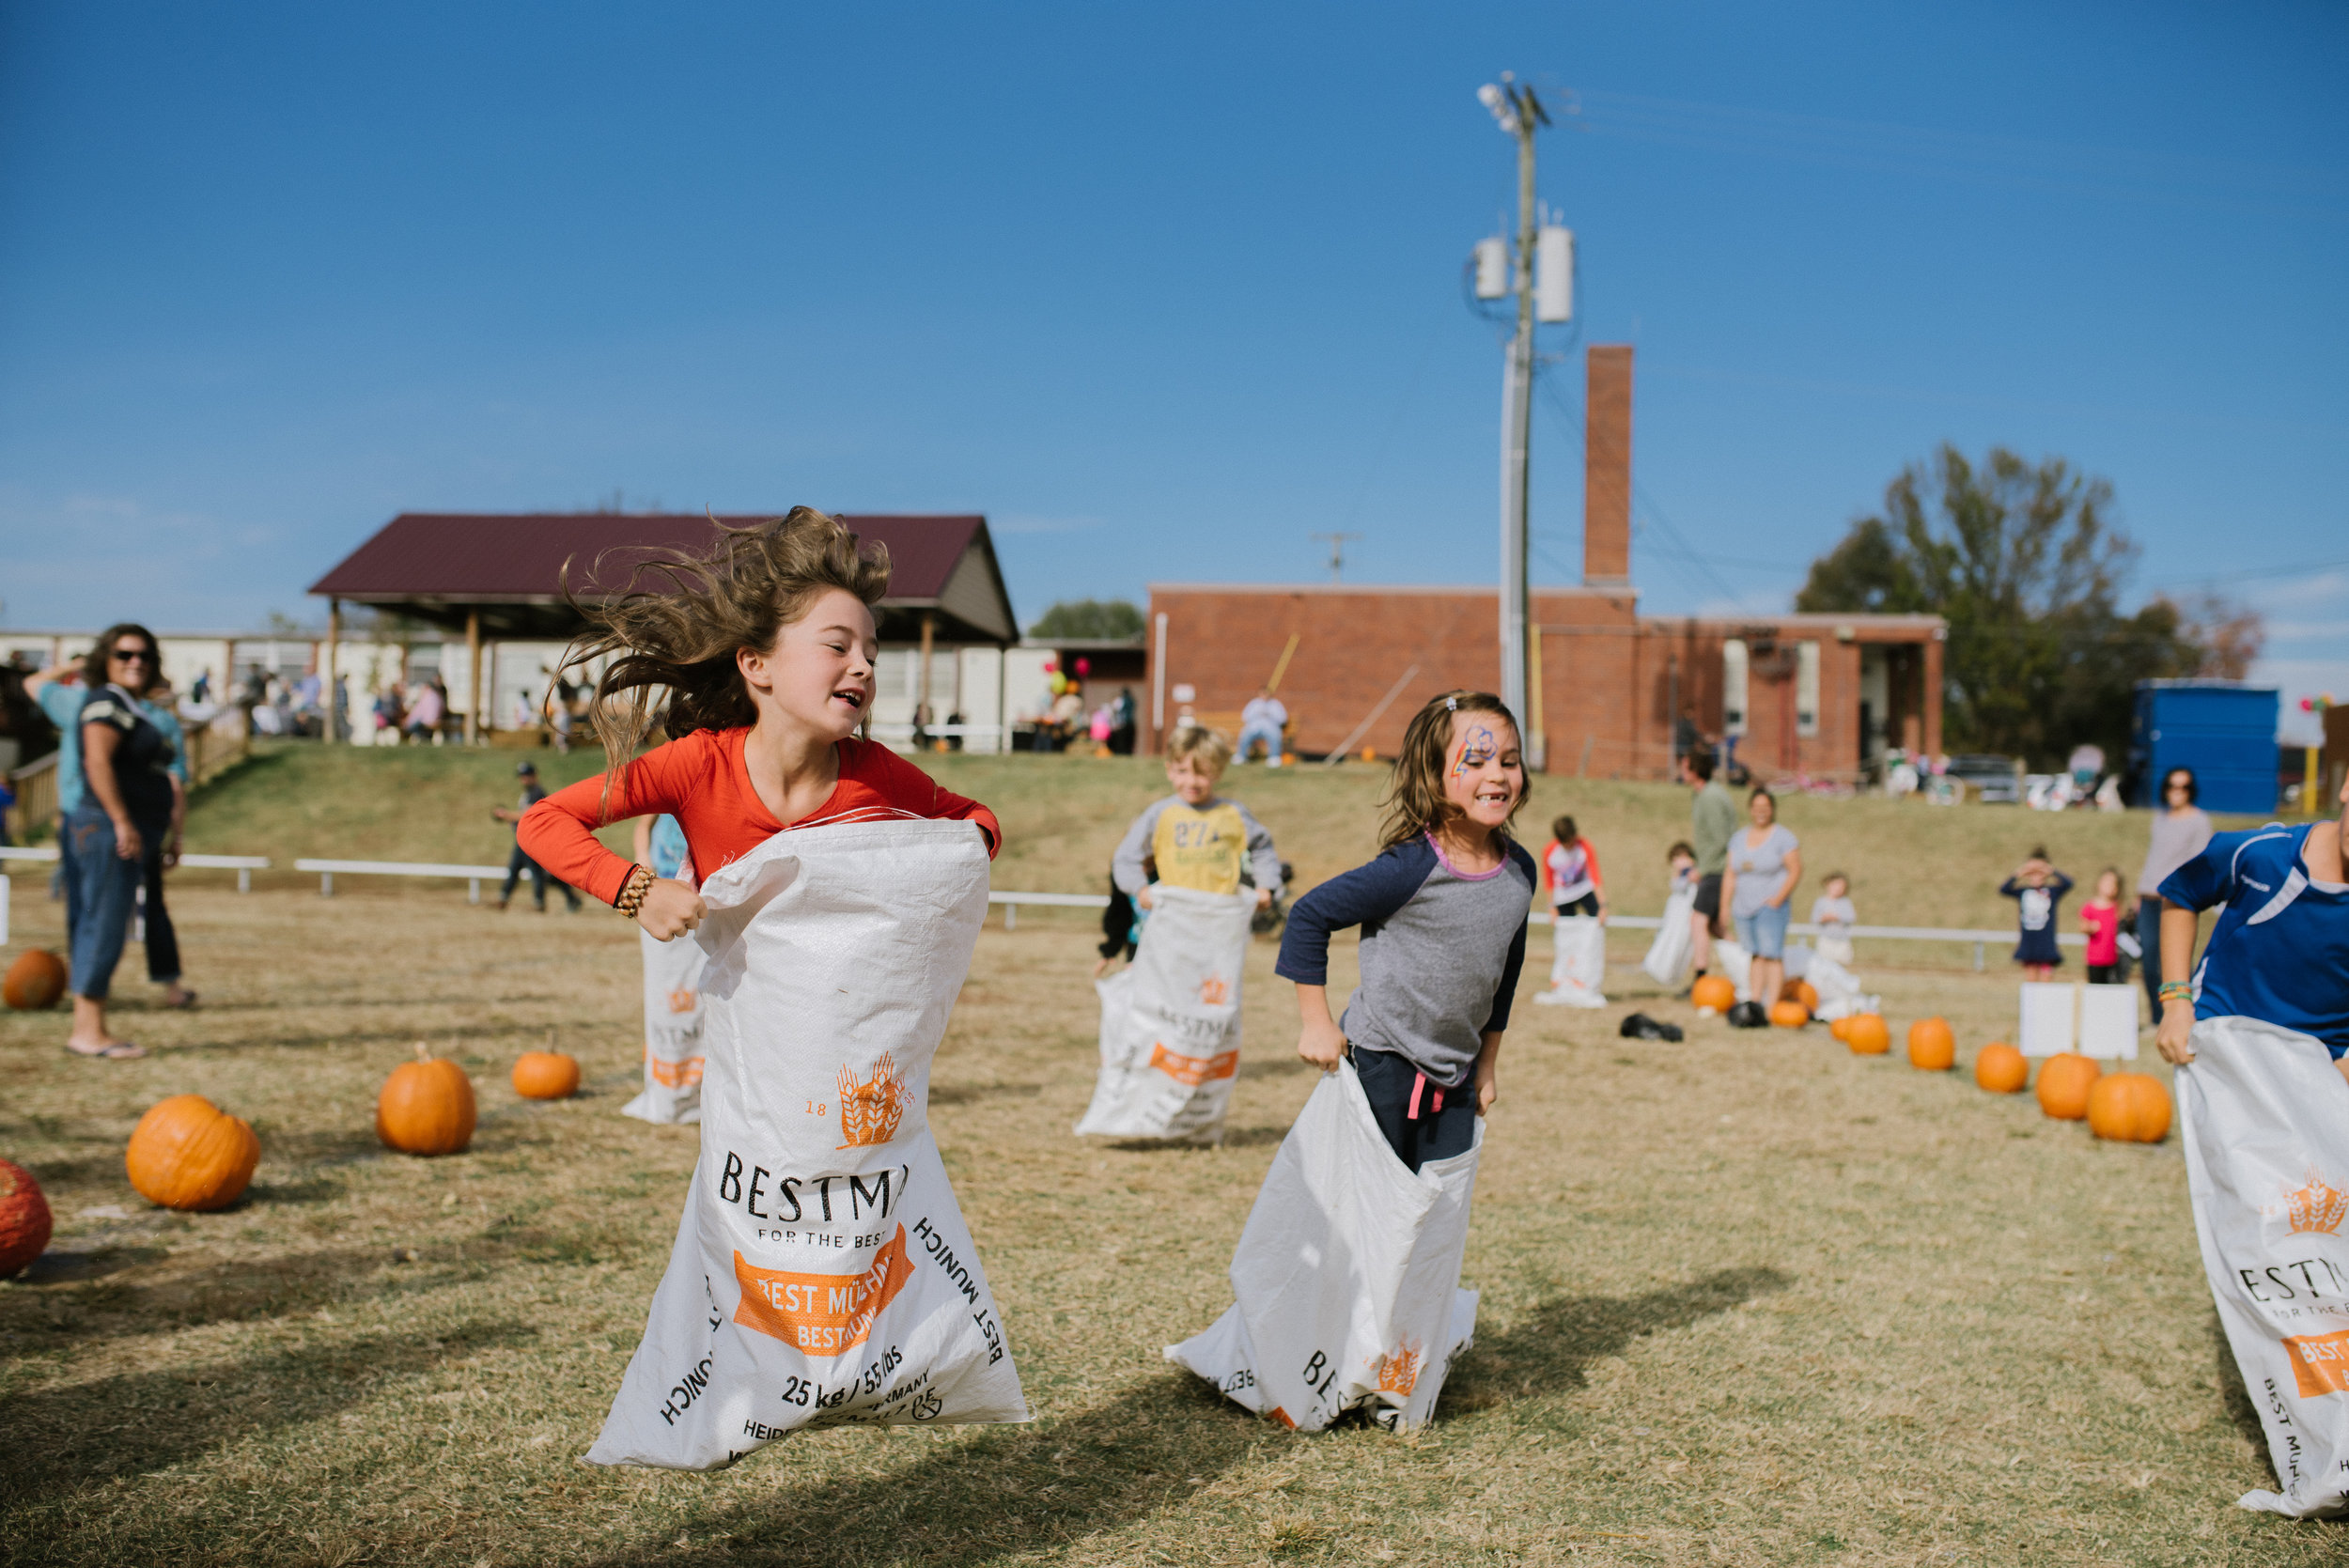 Over 600 people joined us at our headquarters this past November for the annual Hopewell Fall Festival. Tasty food, lots of games for kids, music and storytelling were all free for family, friends and neighbors to enjoy for an afternoon of fellowship and laughs.